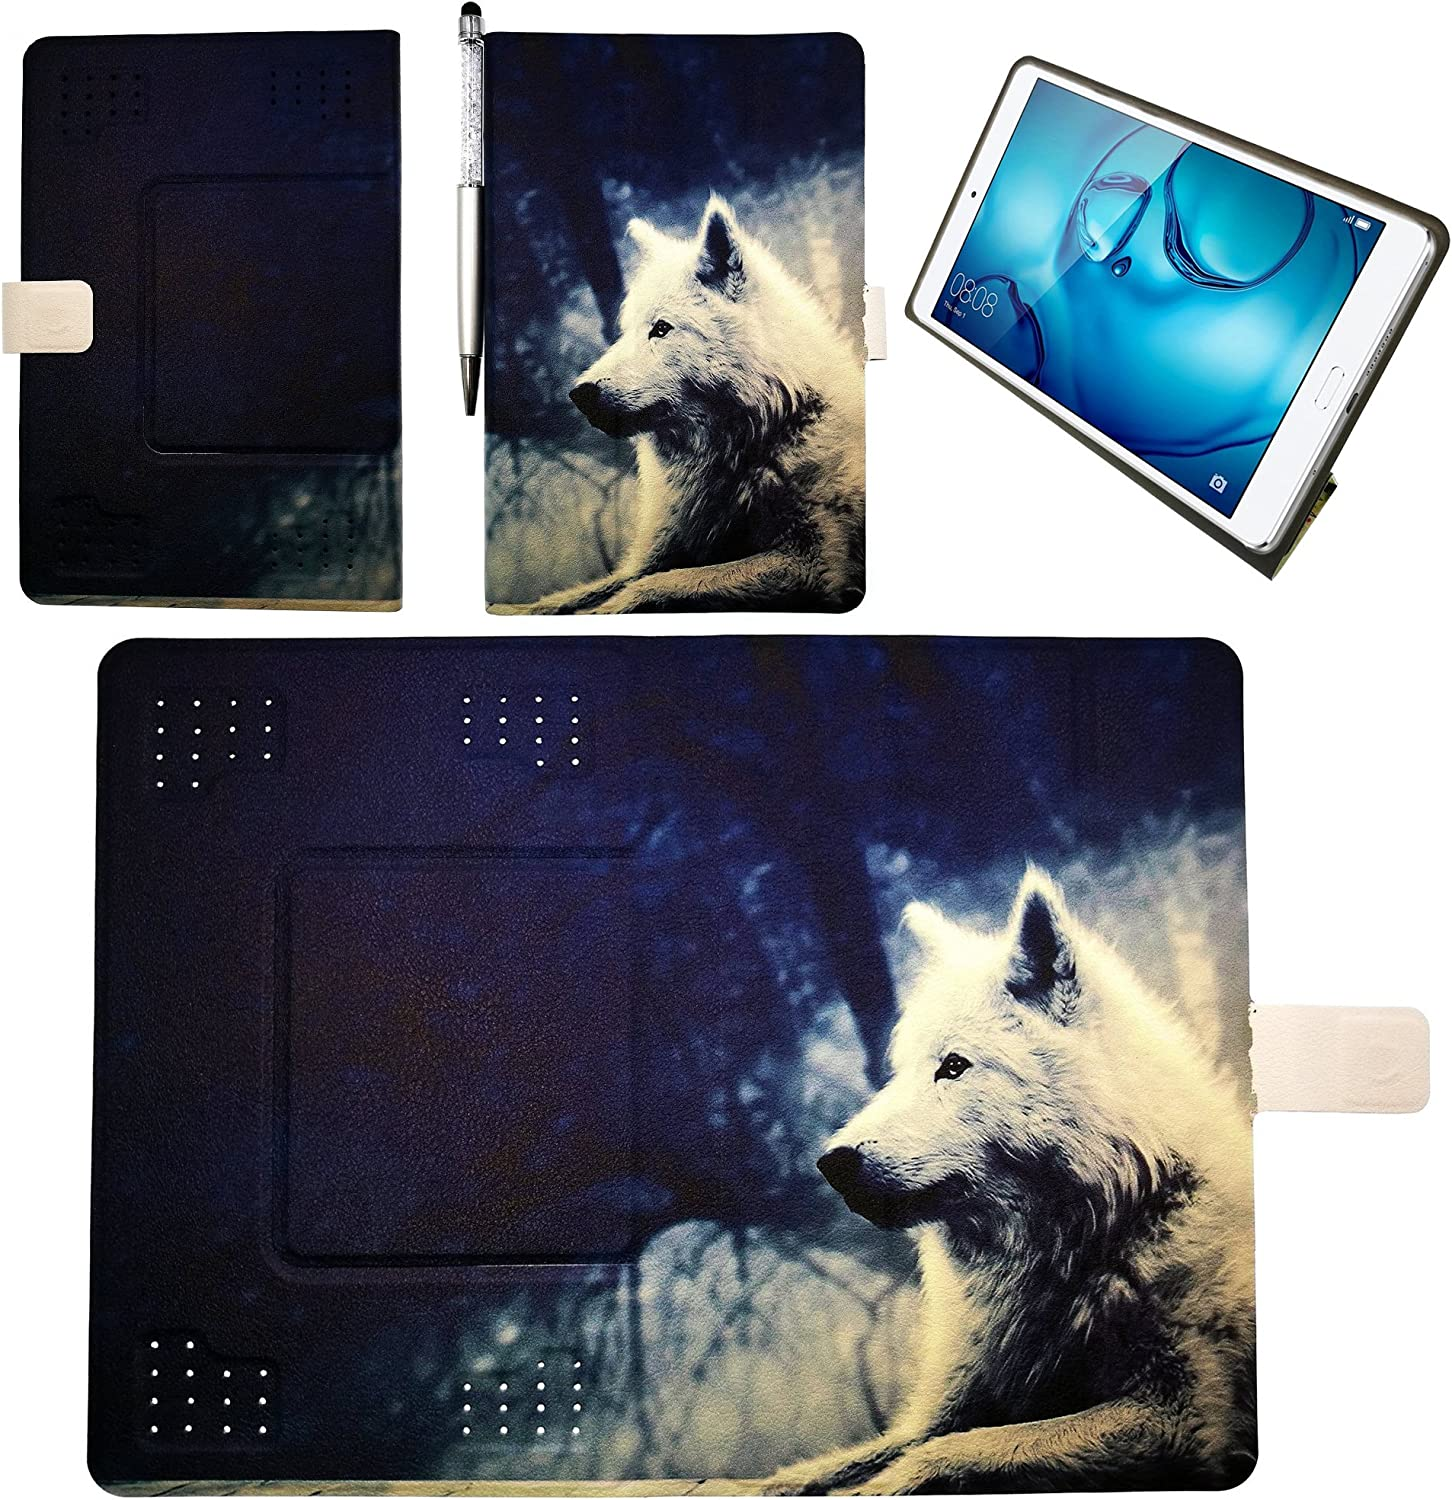 Tablet Cover Case for Samsung SM-P585Y Galaxy Tab A 10.1 2016 Case HOME